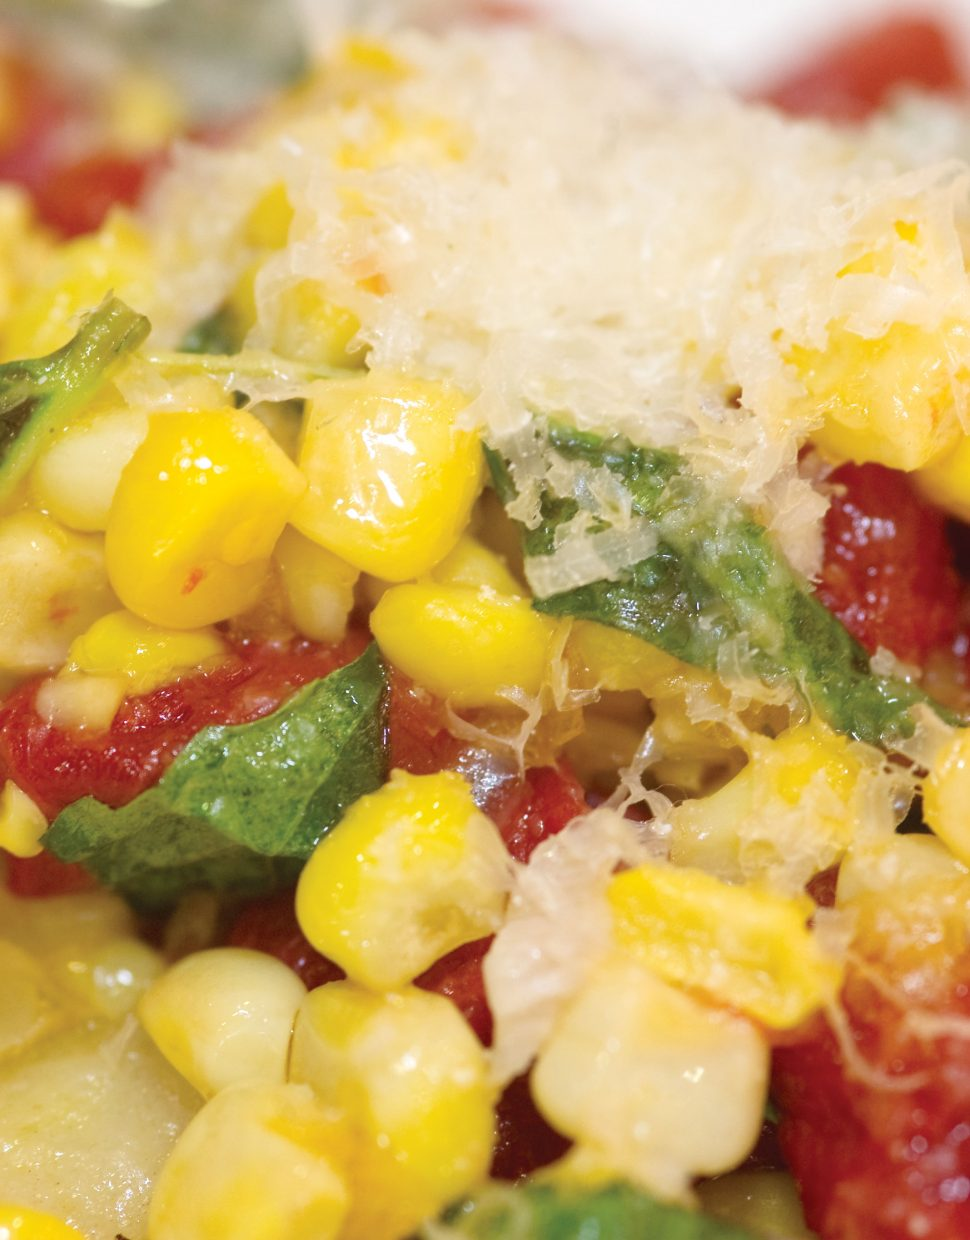 Roasted corn gnocchi with cherry tomatoes is just one of the tasty treats chef Ezra Duker likes to whip up at the Truffle Pig restaurant inside One Steamboat Place.